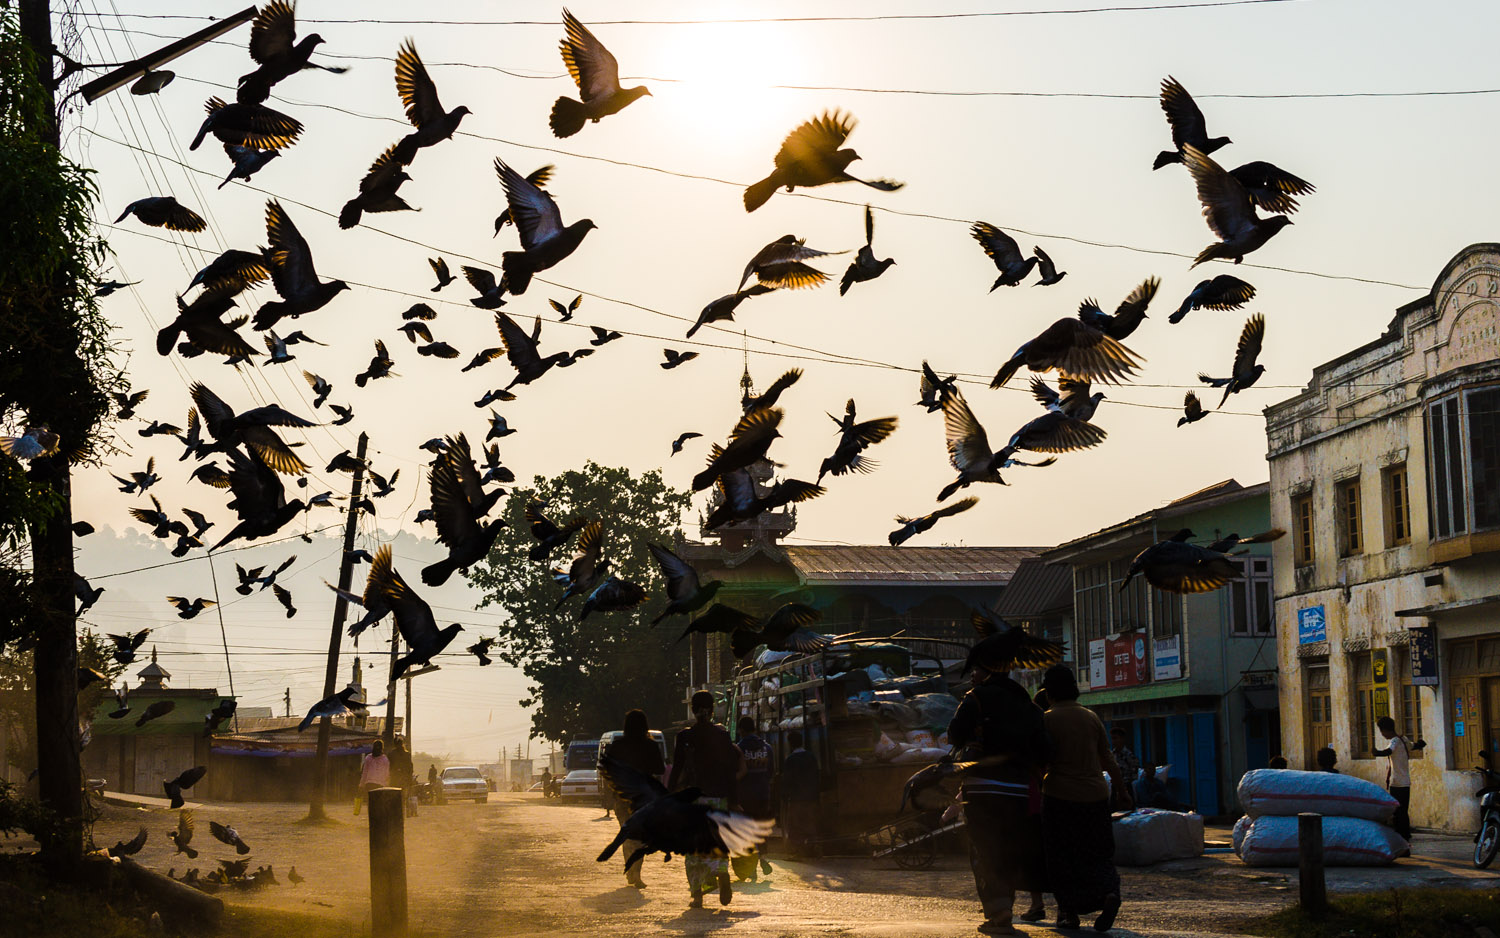 Birds stir at sunrise as kids run to the market and the town of Kalaw begins to wake.  Myanmar / Burma  © Dustin Main 2013